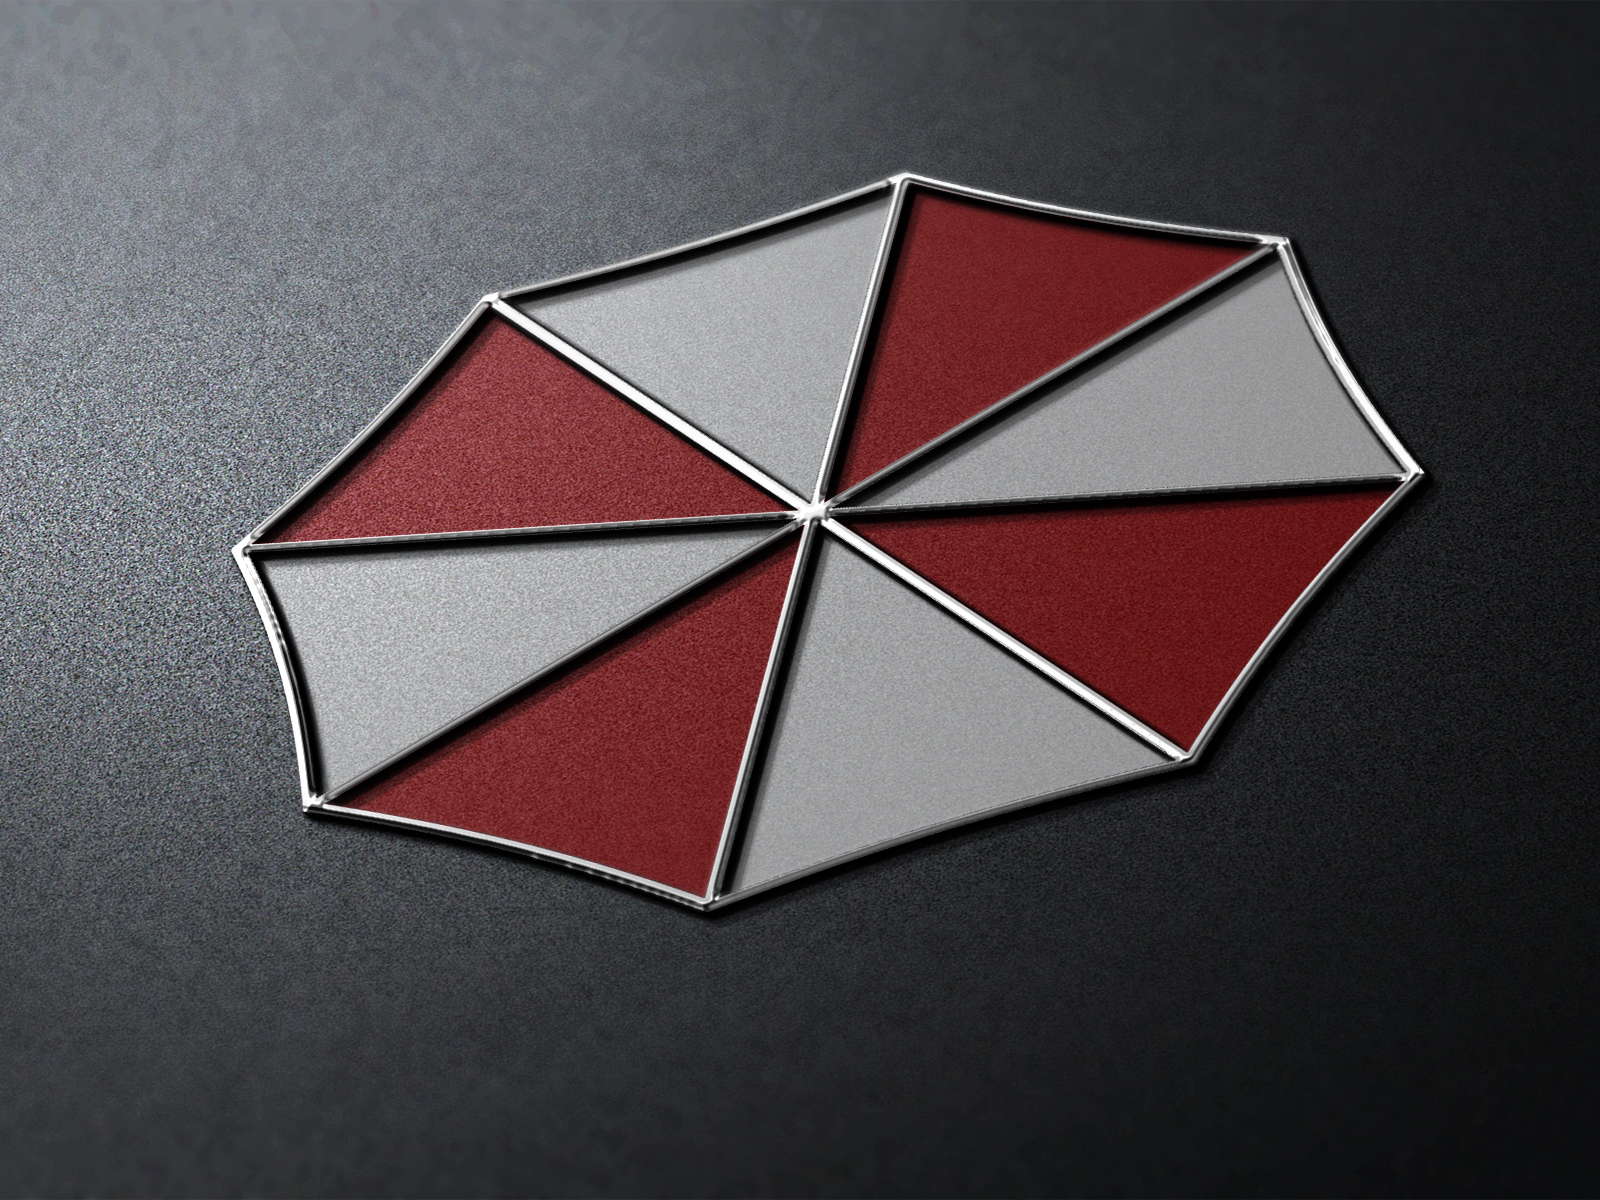 45 umbrella resident evil wallpaper on wallpapersafari - Umbrella corporation wallpaper hd 1366x768 ...